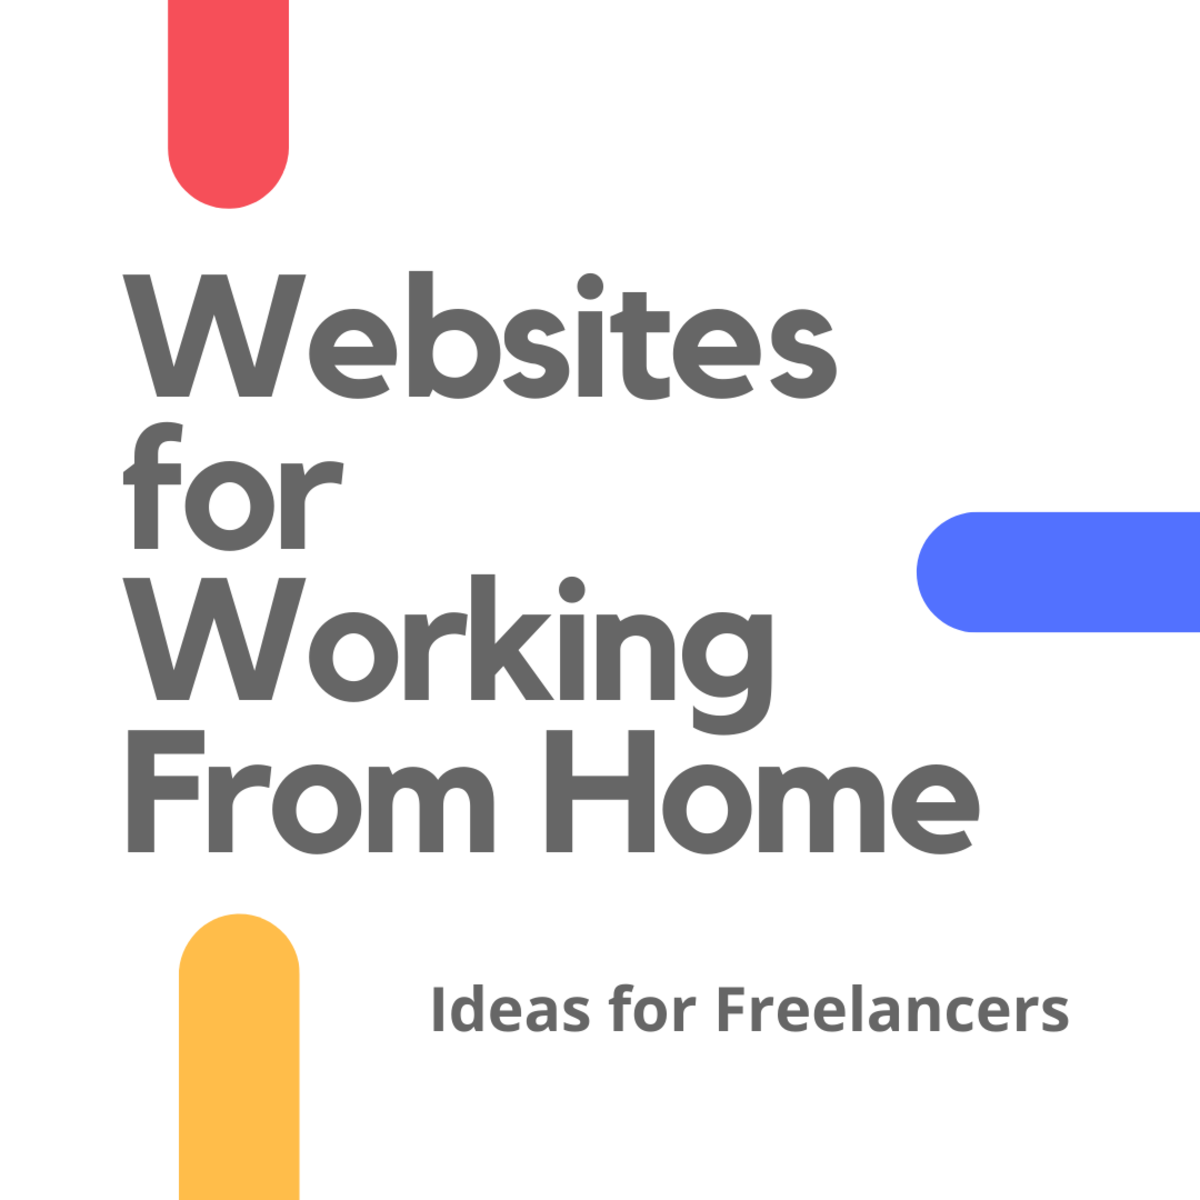 Discover four websites that provide opportunities for freelancers working from home.